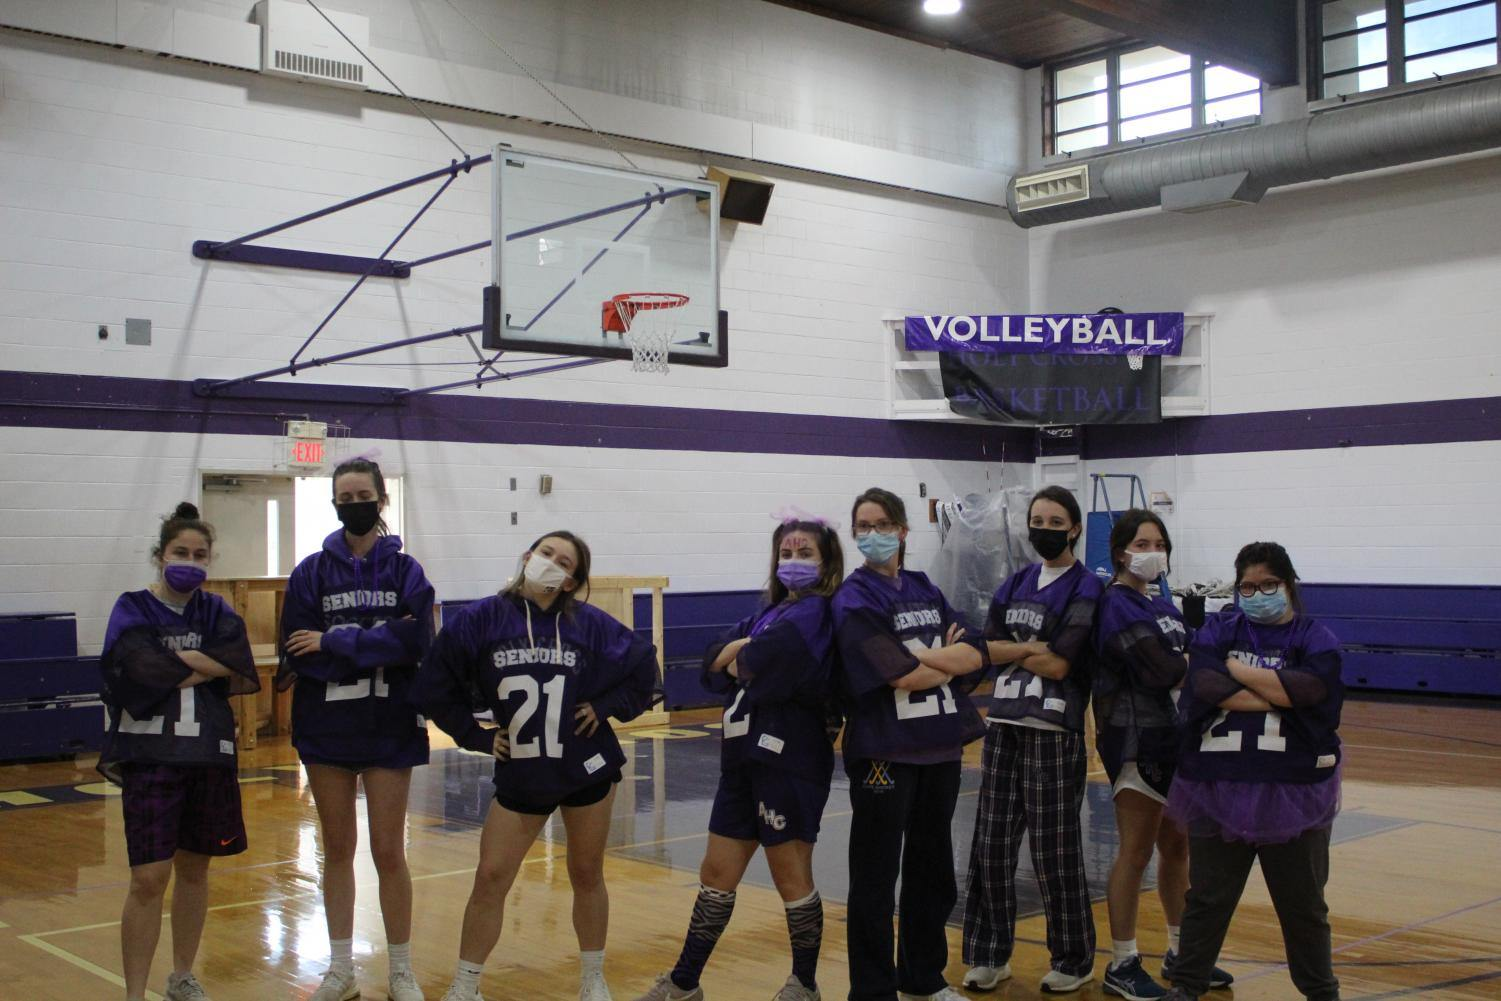 One of the senior teams for the dodgeball powderpuff game against the juniors.